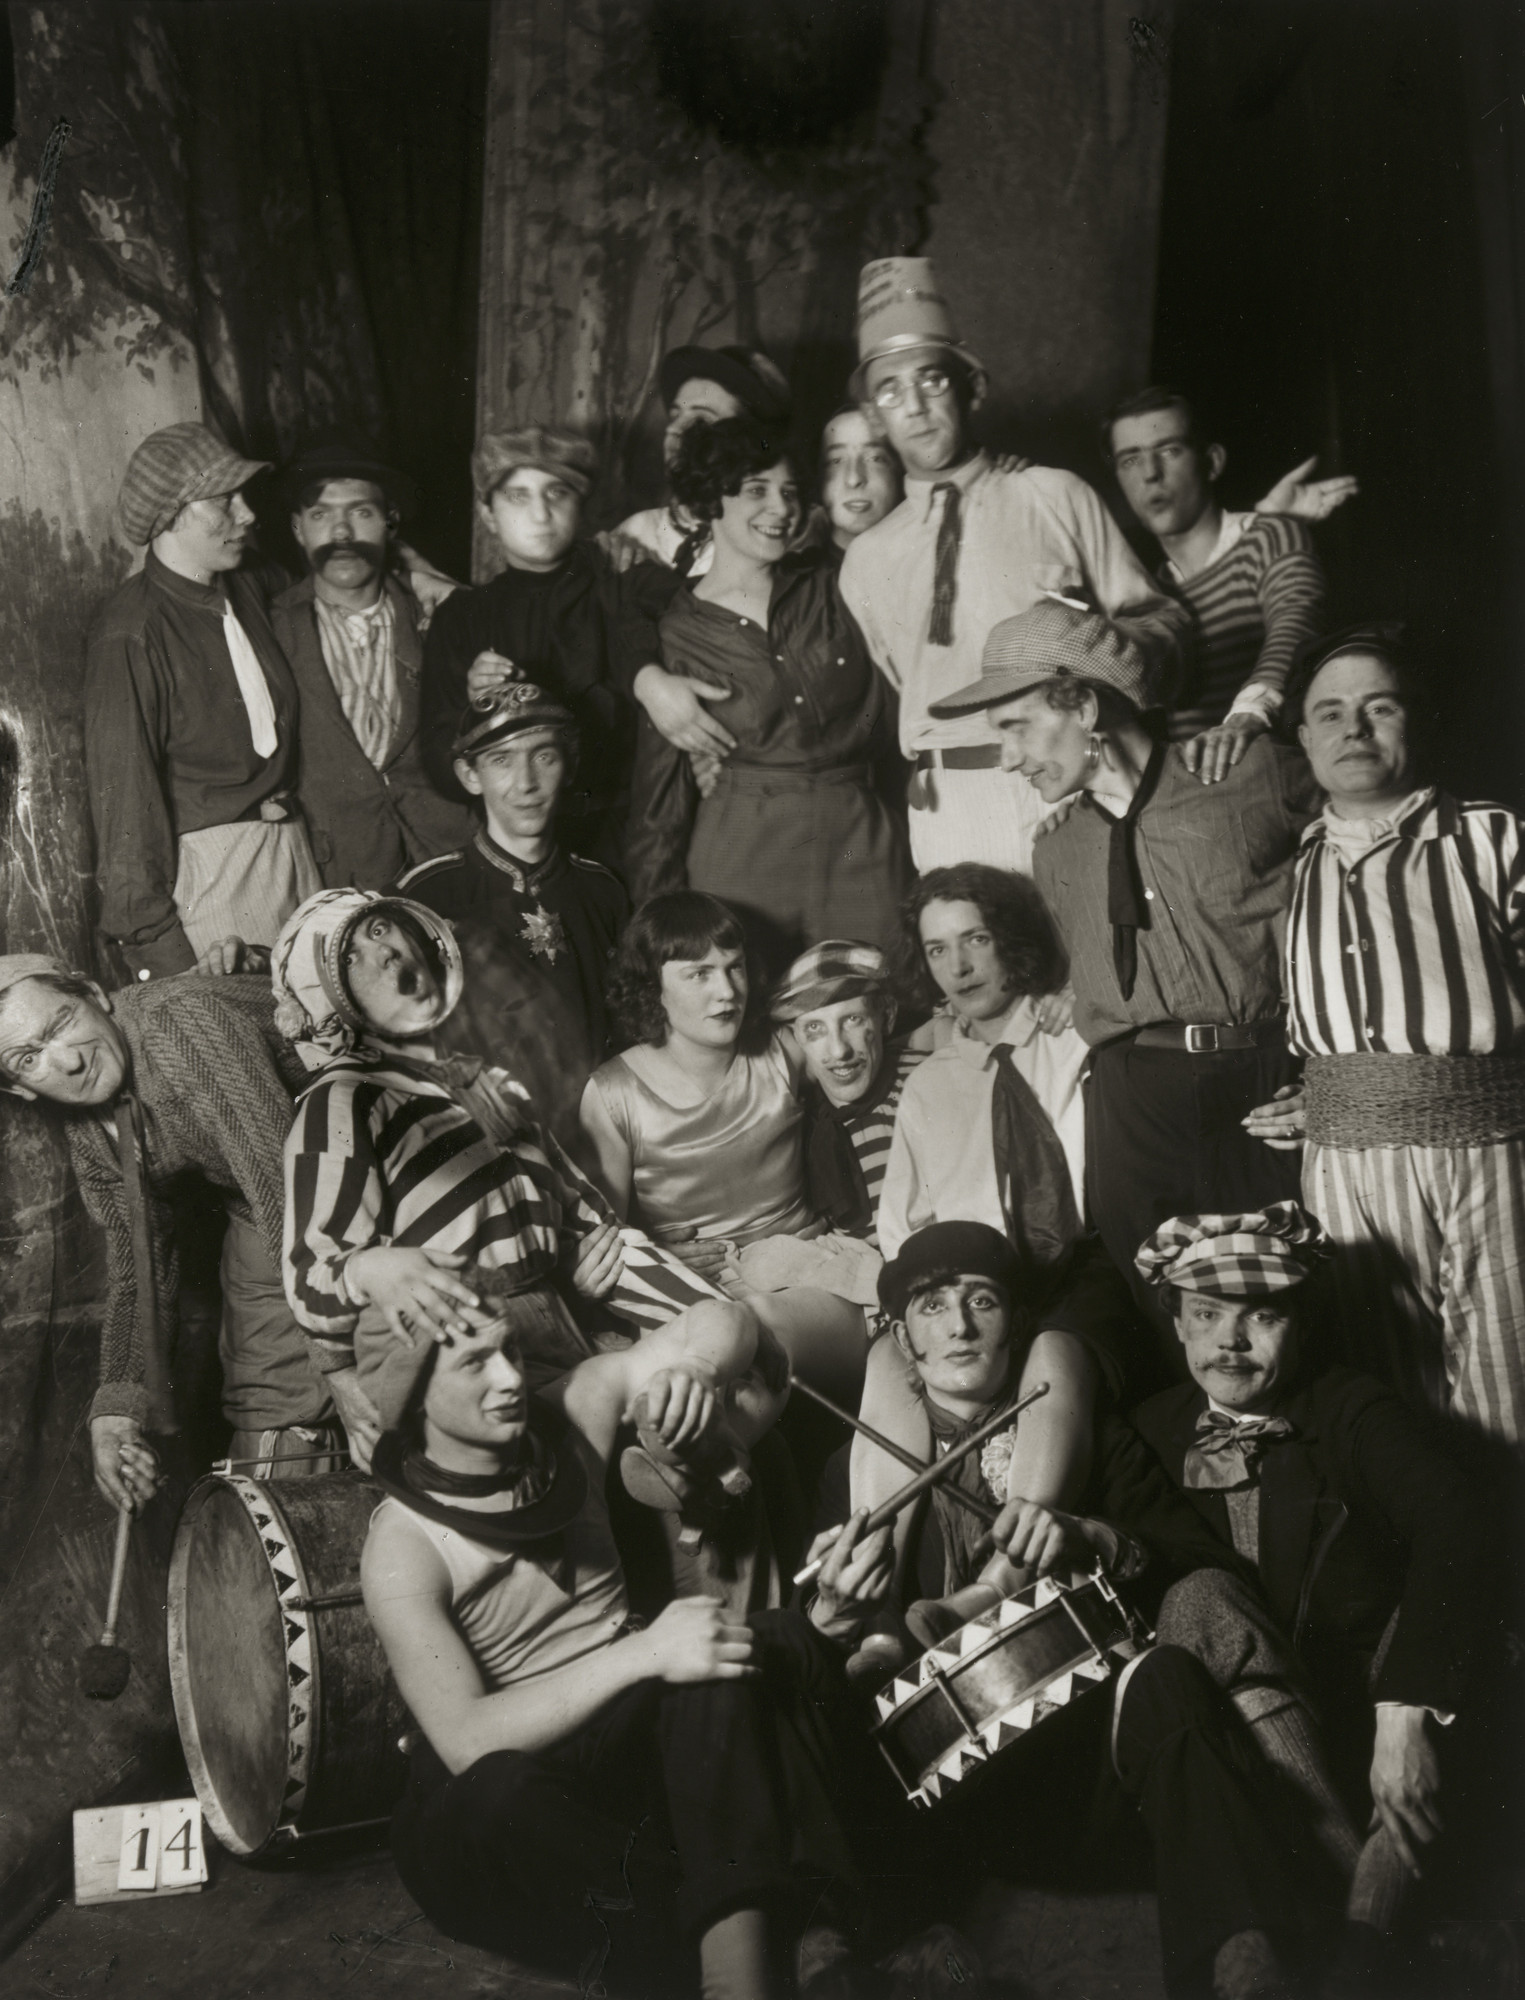 August Sander. Artists' Carnival in Cologne. 1931